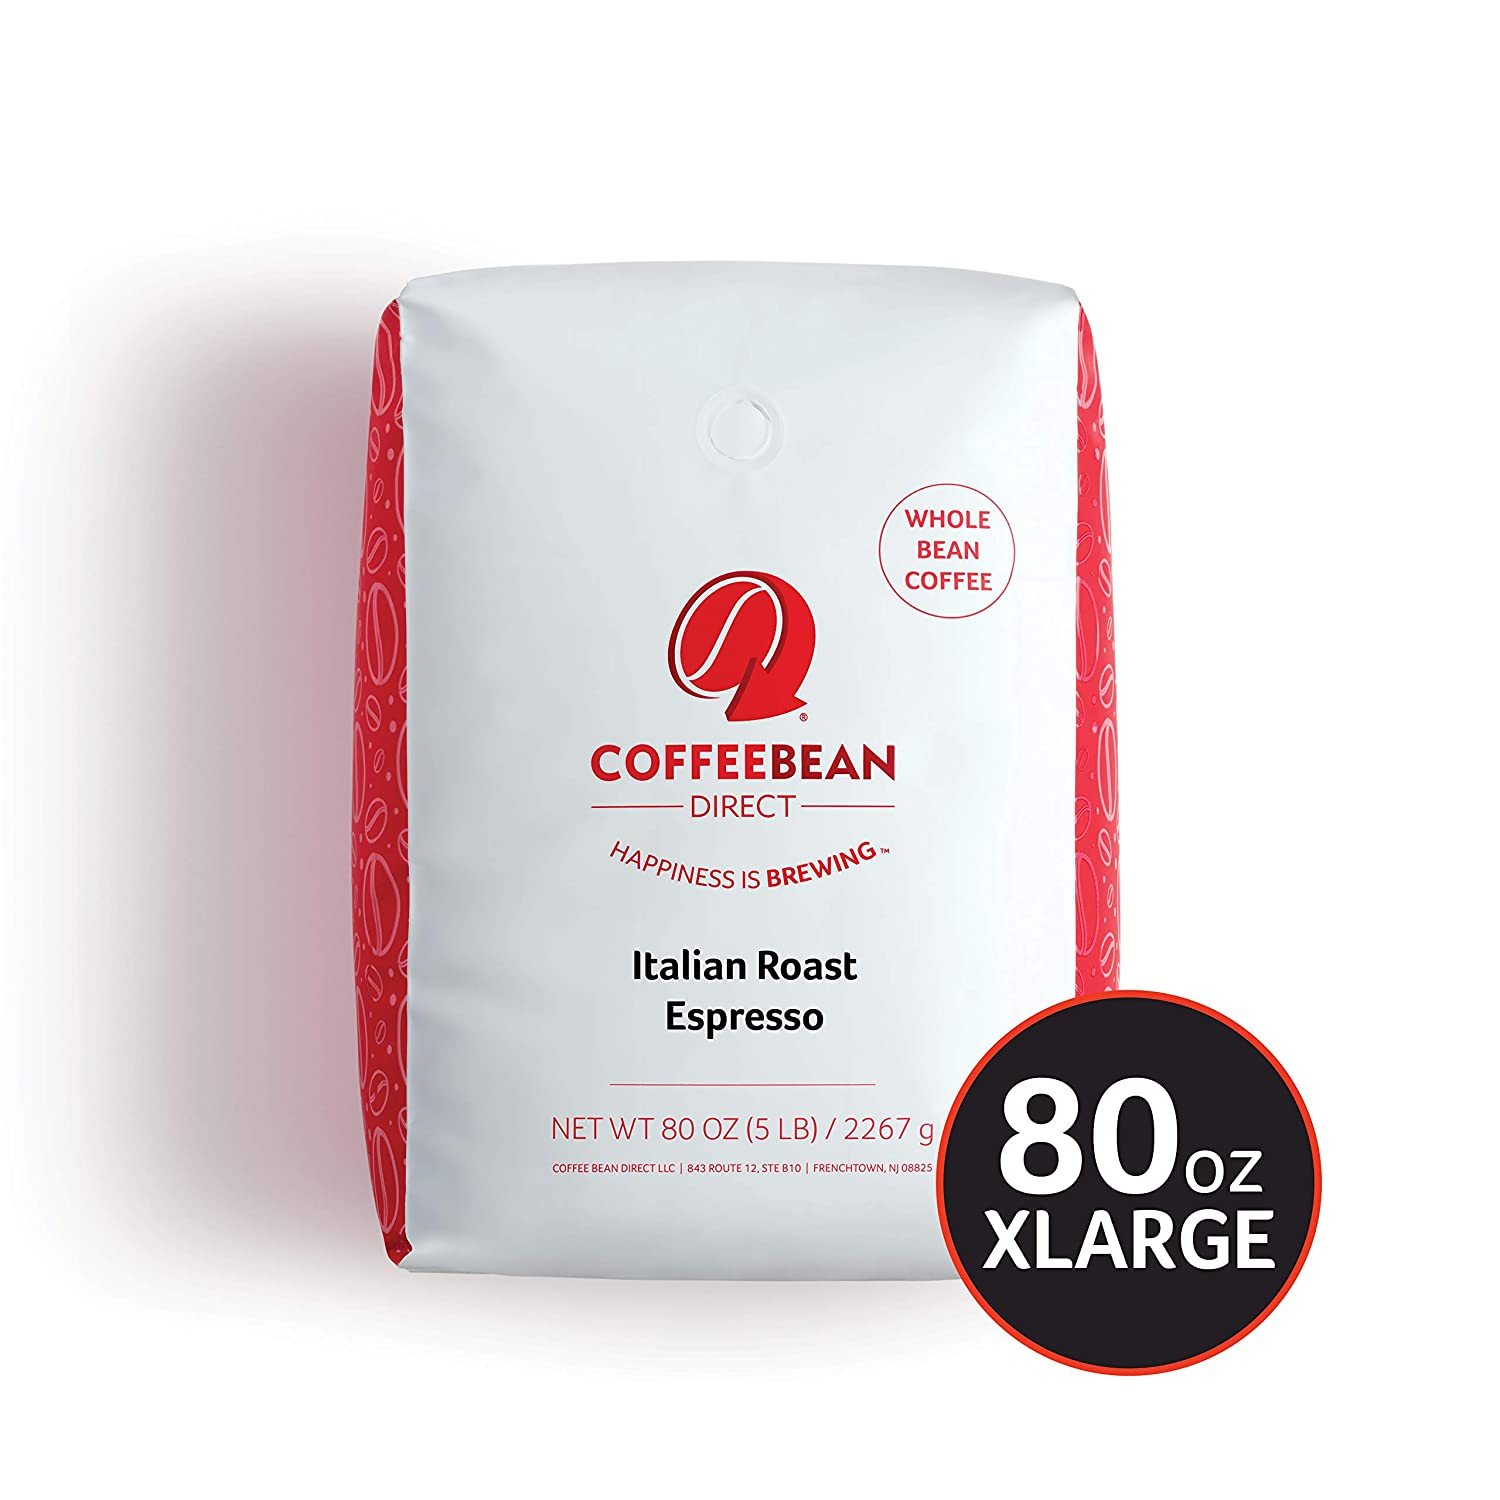 Coffee-Bean-Direct-Italian-Roast-Espresso,-Whole-Bean-Coffee